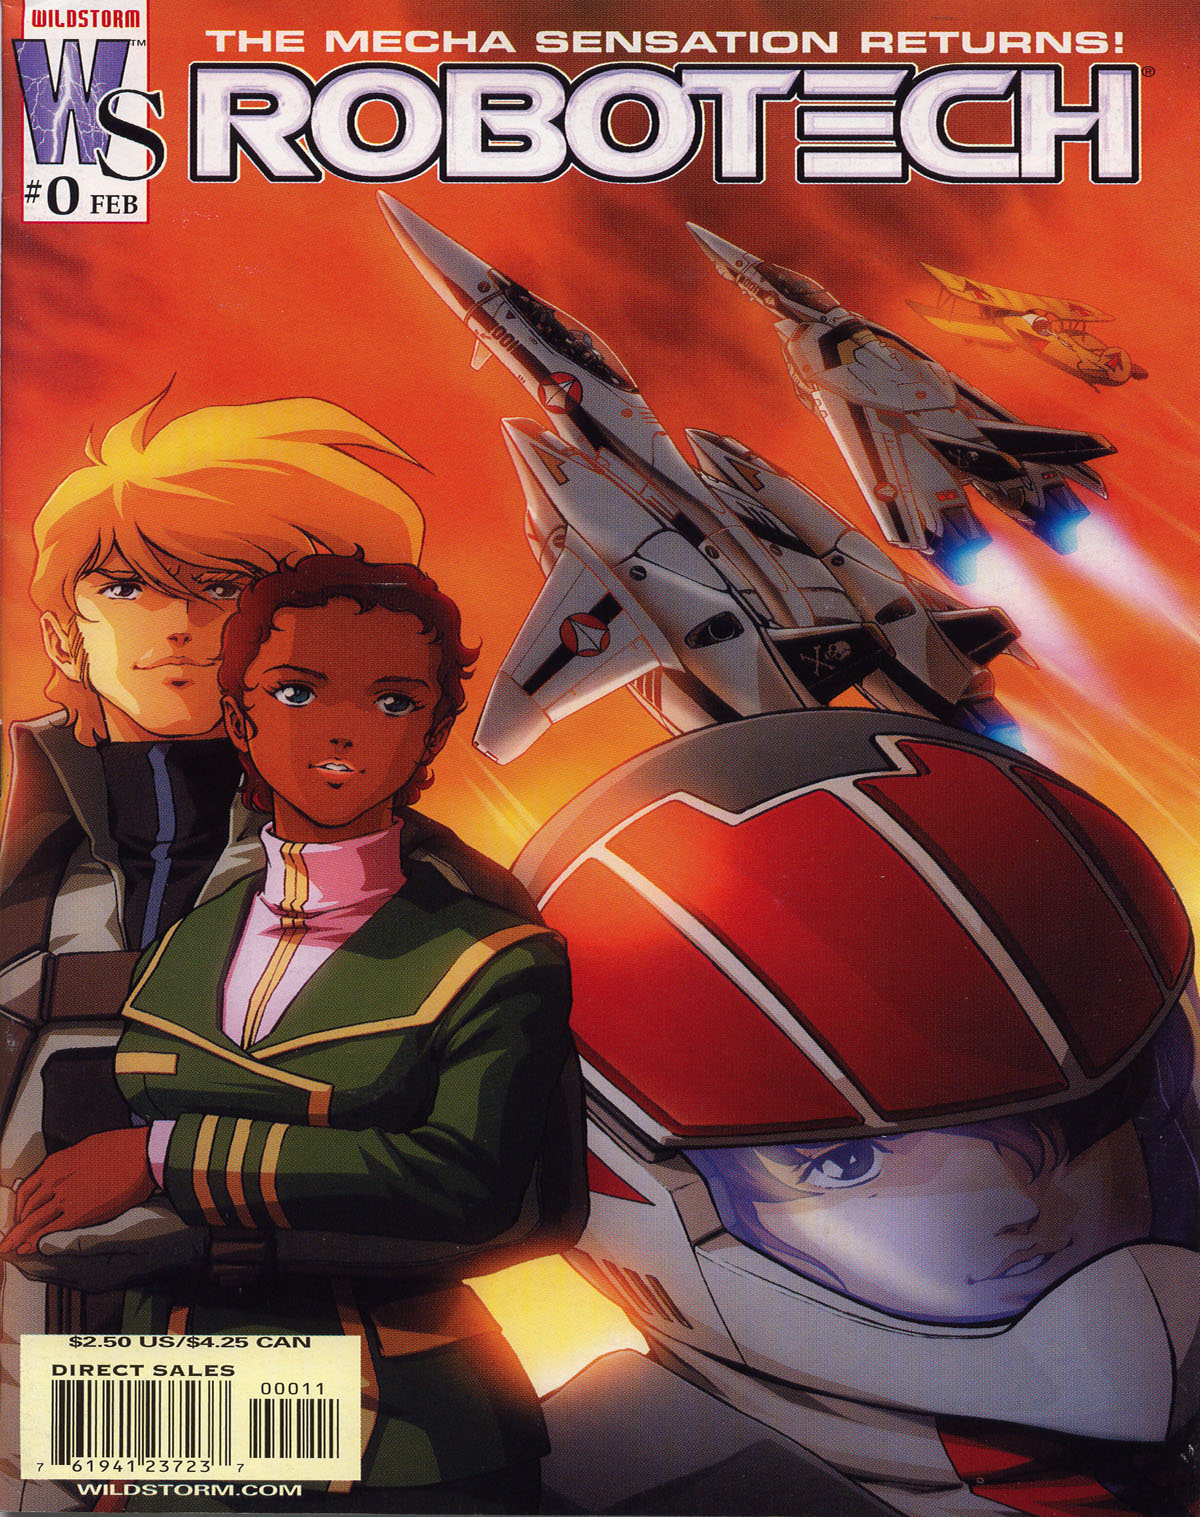 Robotech (2003) issue 0 - Page 1